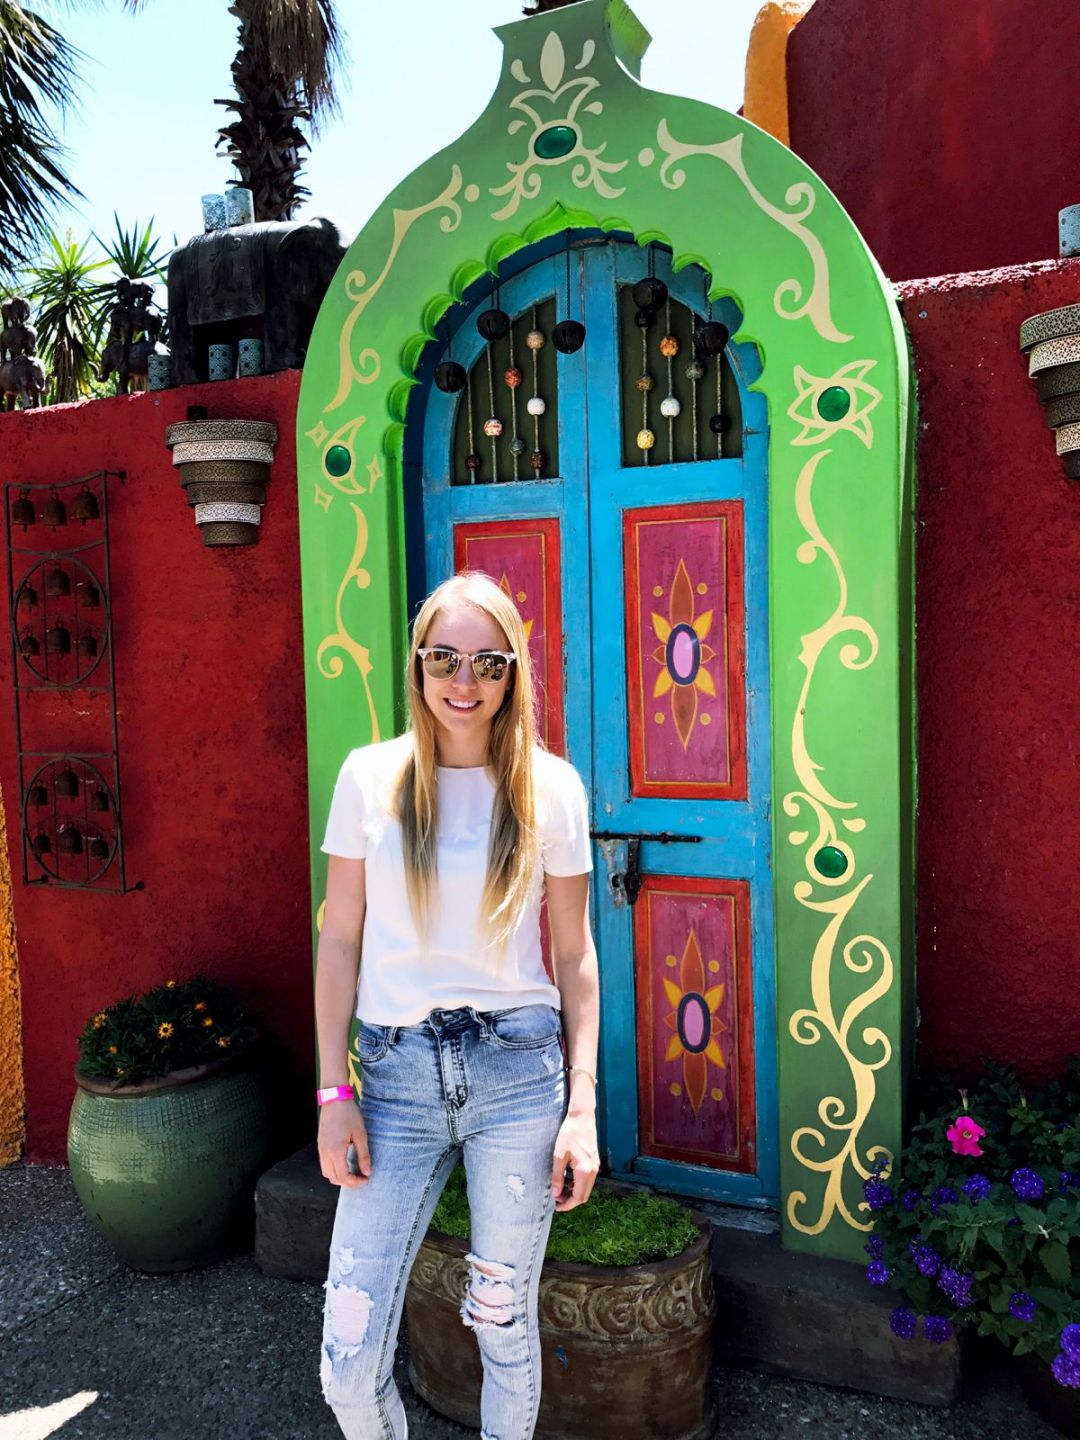 Busch Gardens Tampa Roller Coasters Review by Rachael Burgess